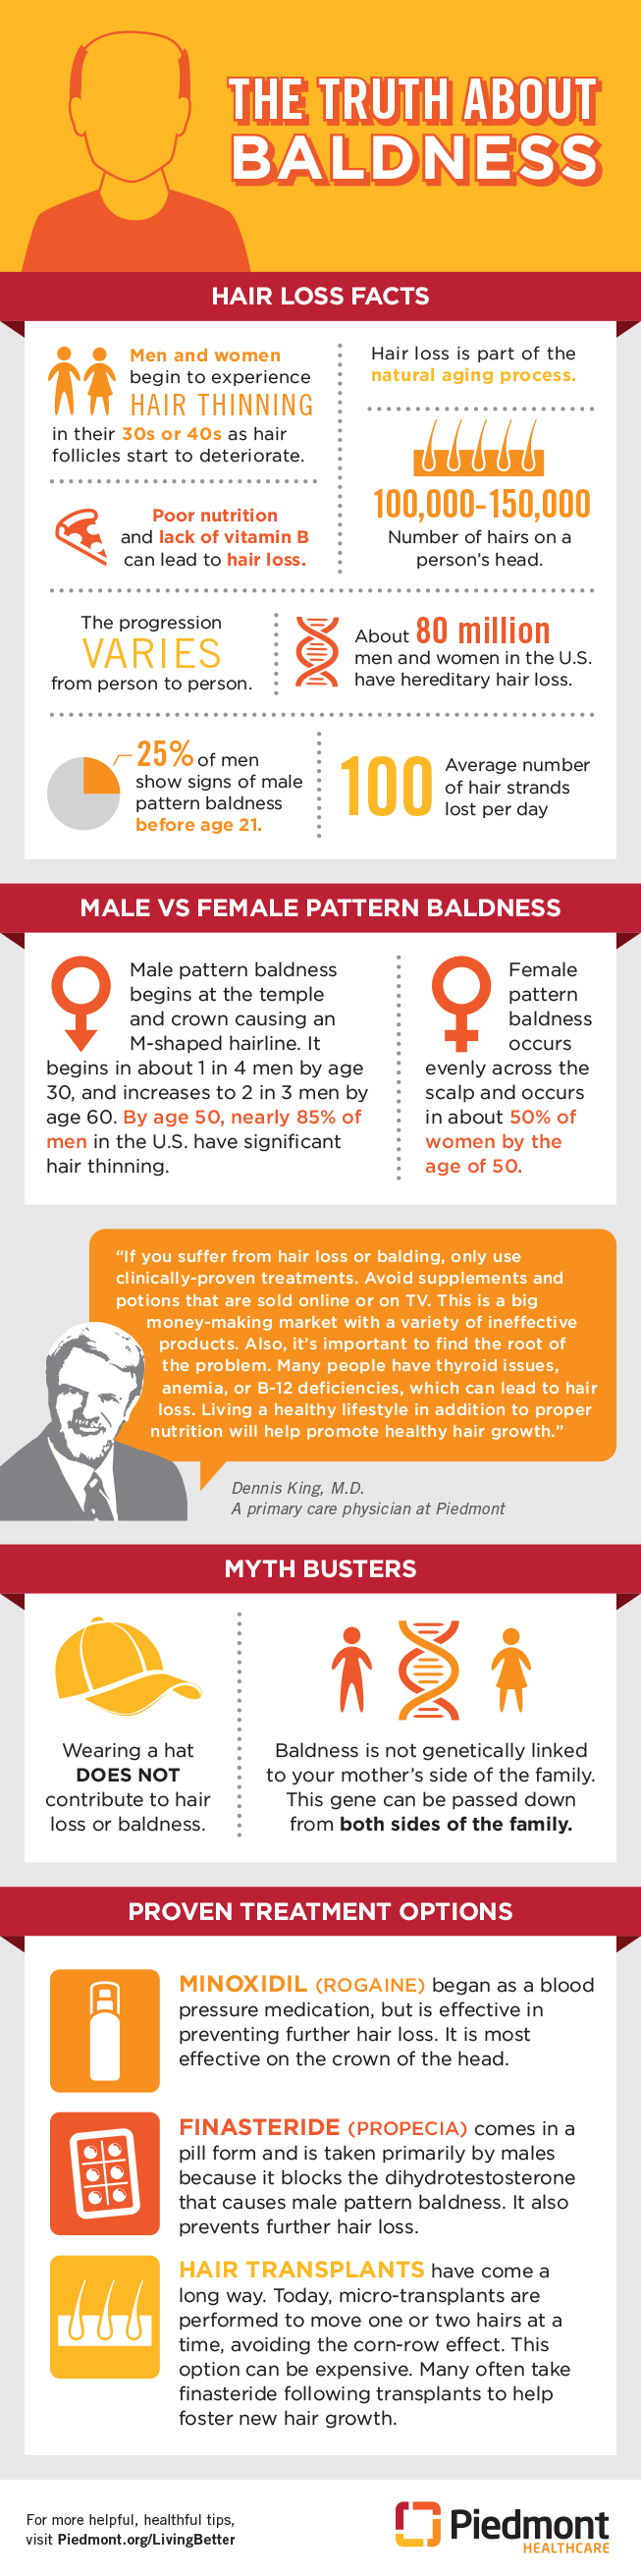 The truth about baldness graphic